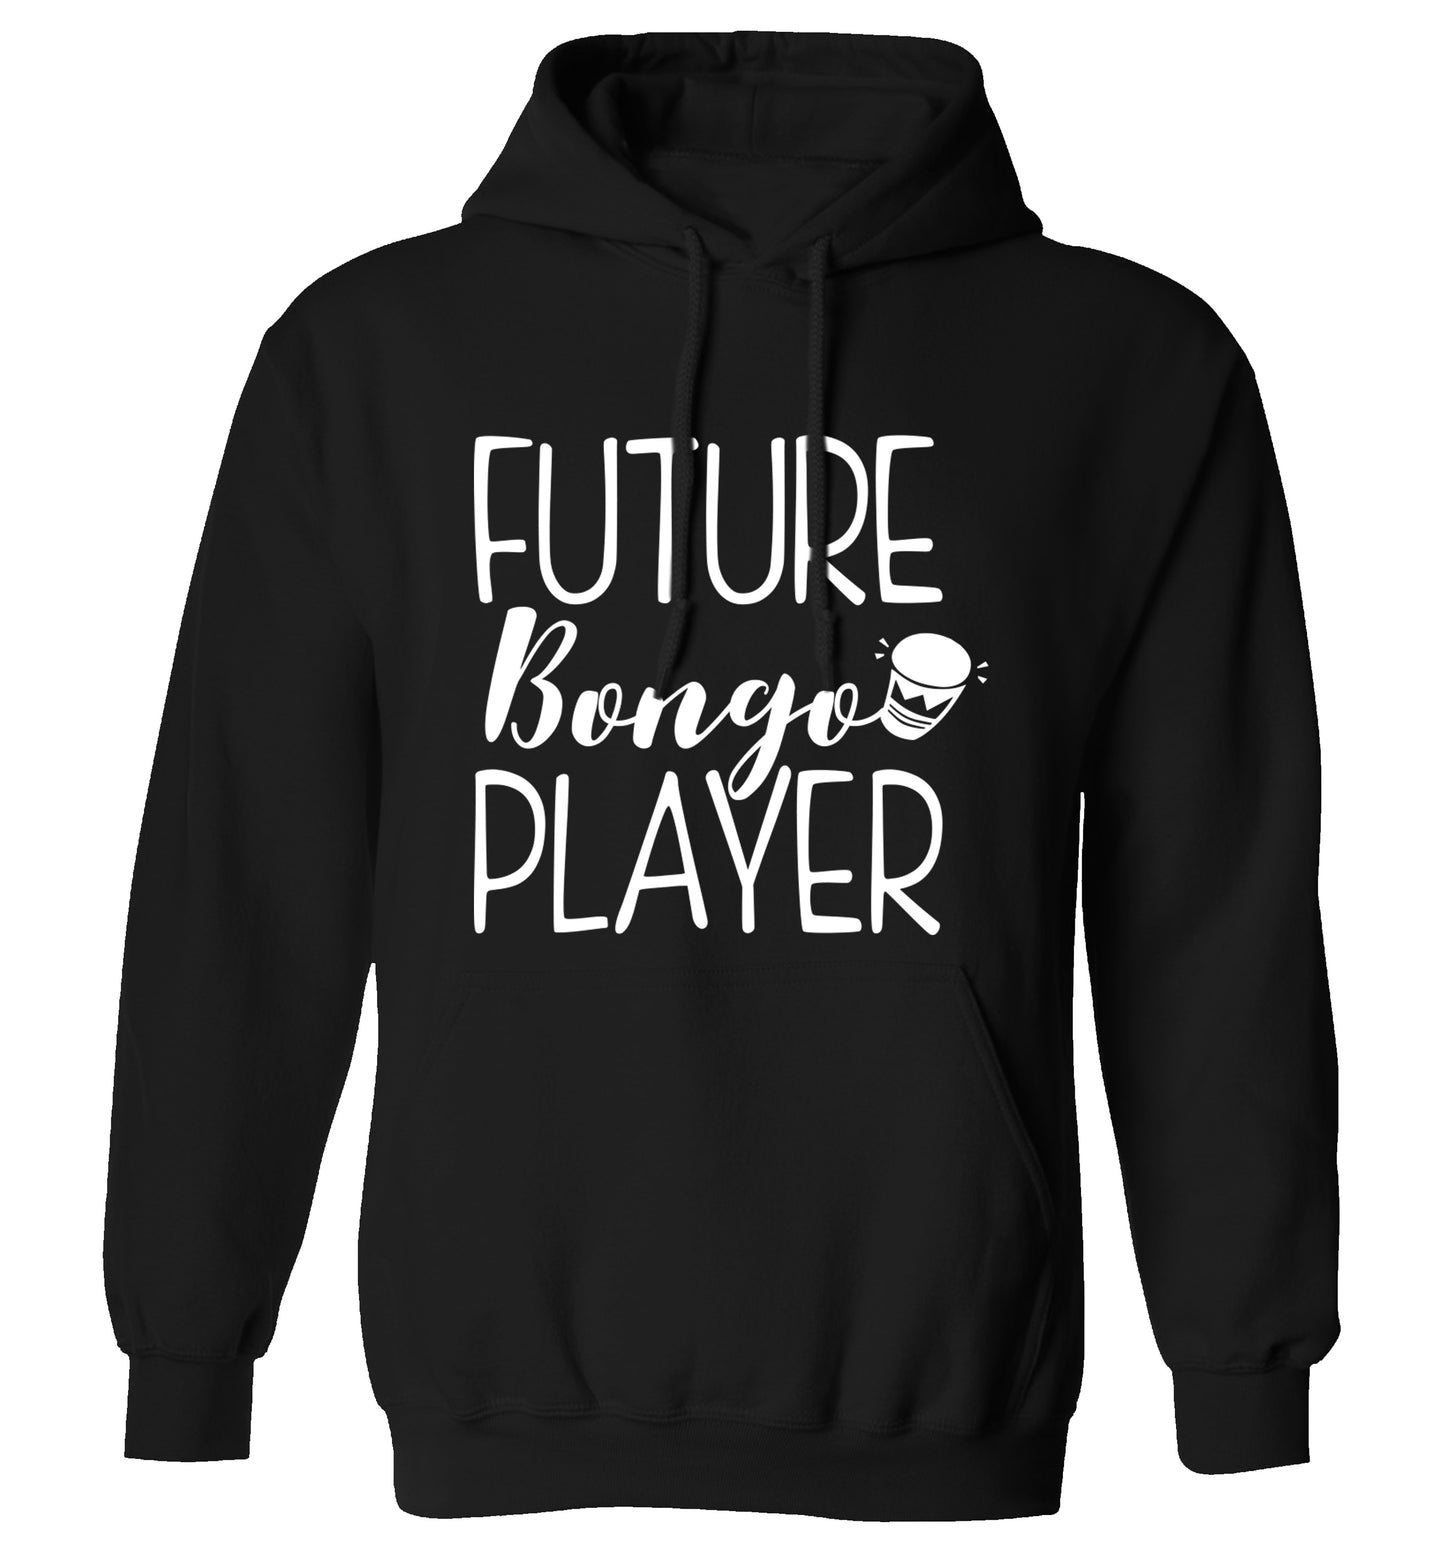 Future bongo player adults unisex black hoodie 2XL